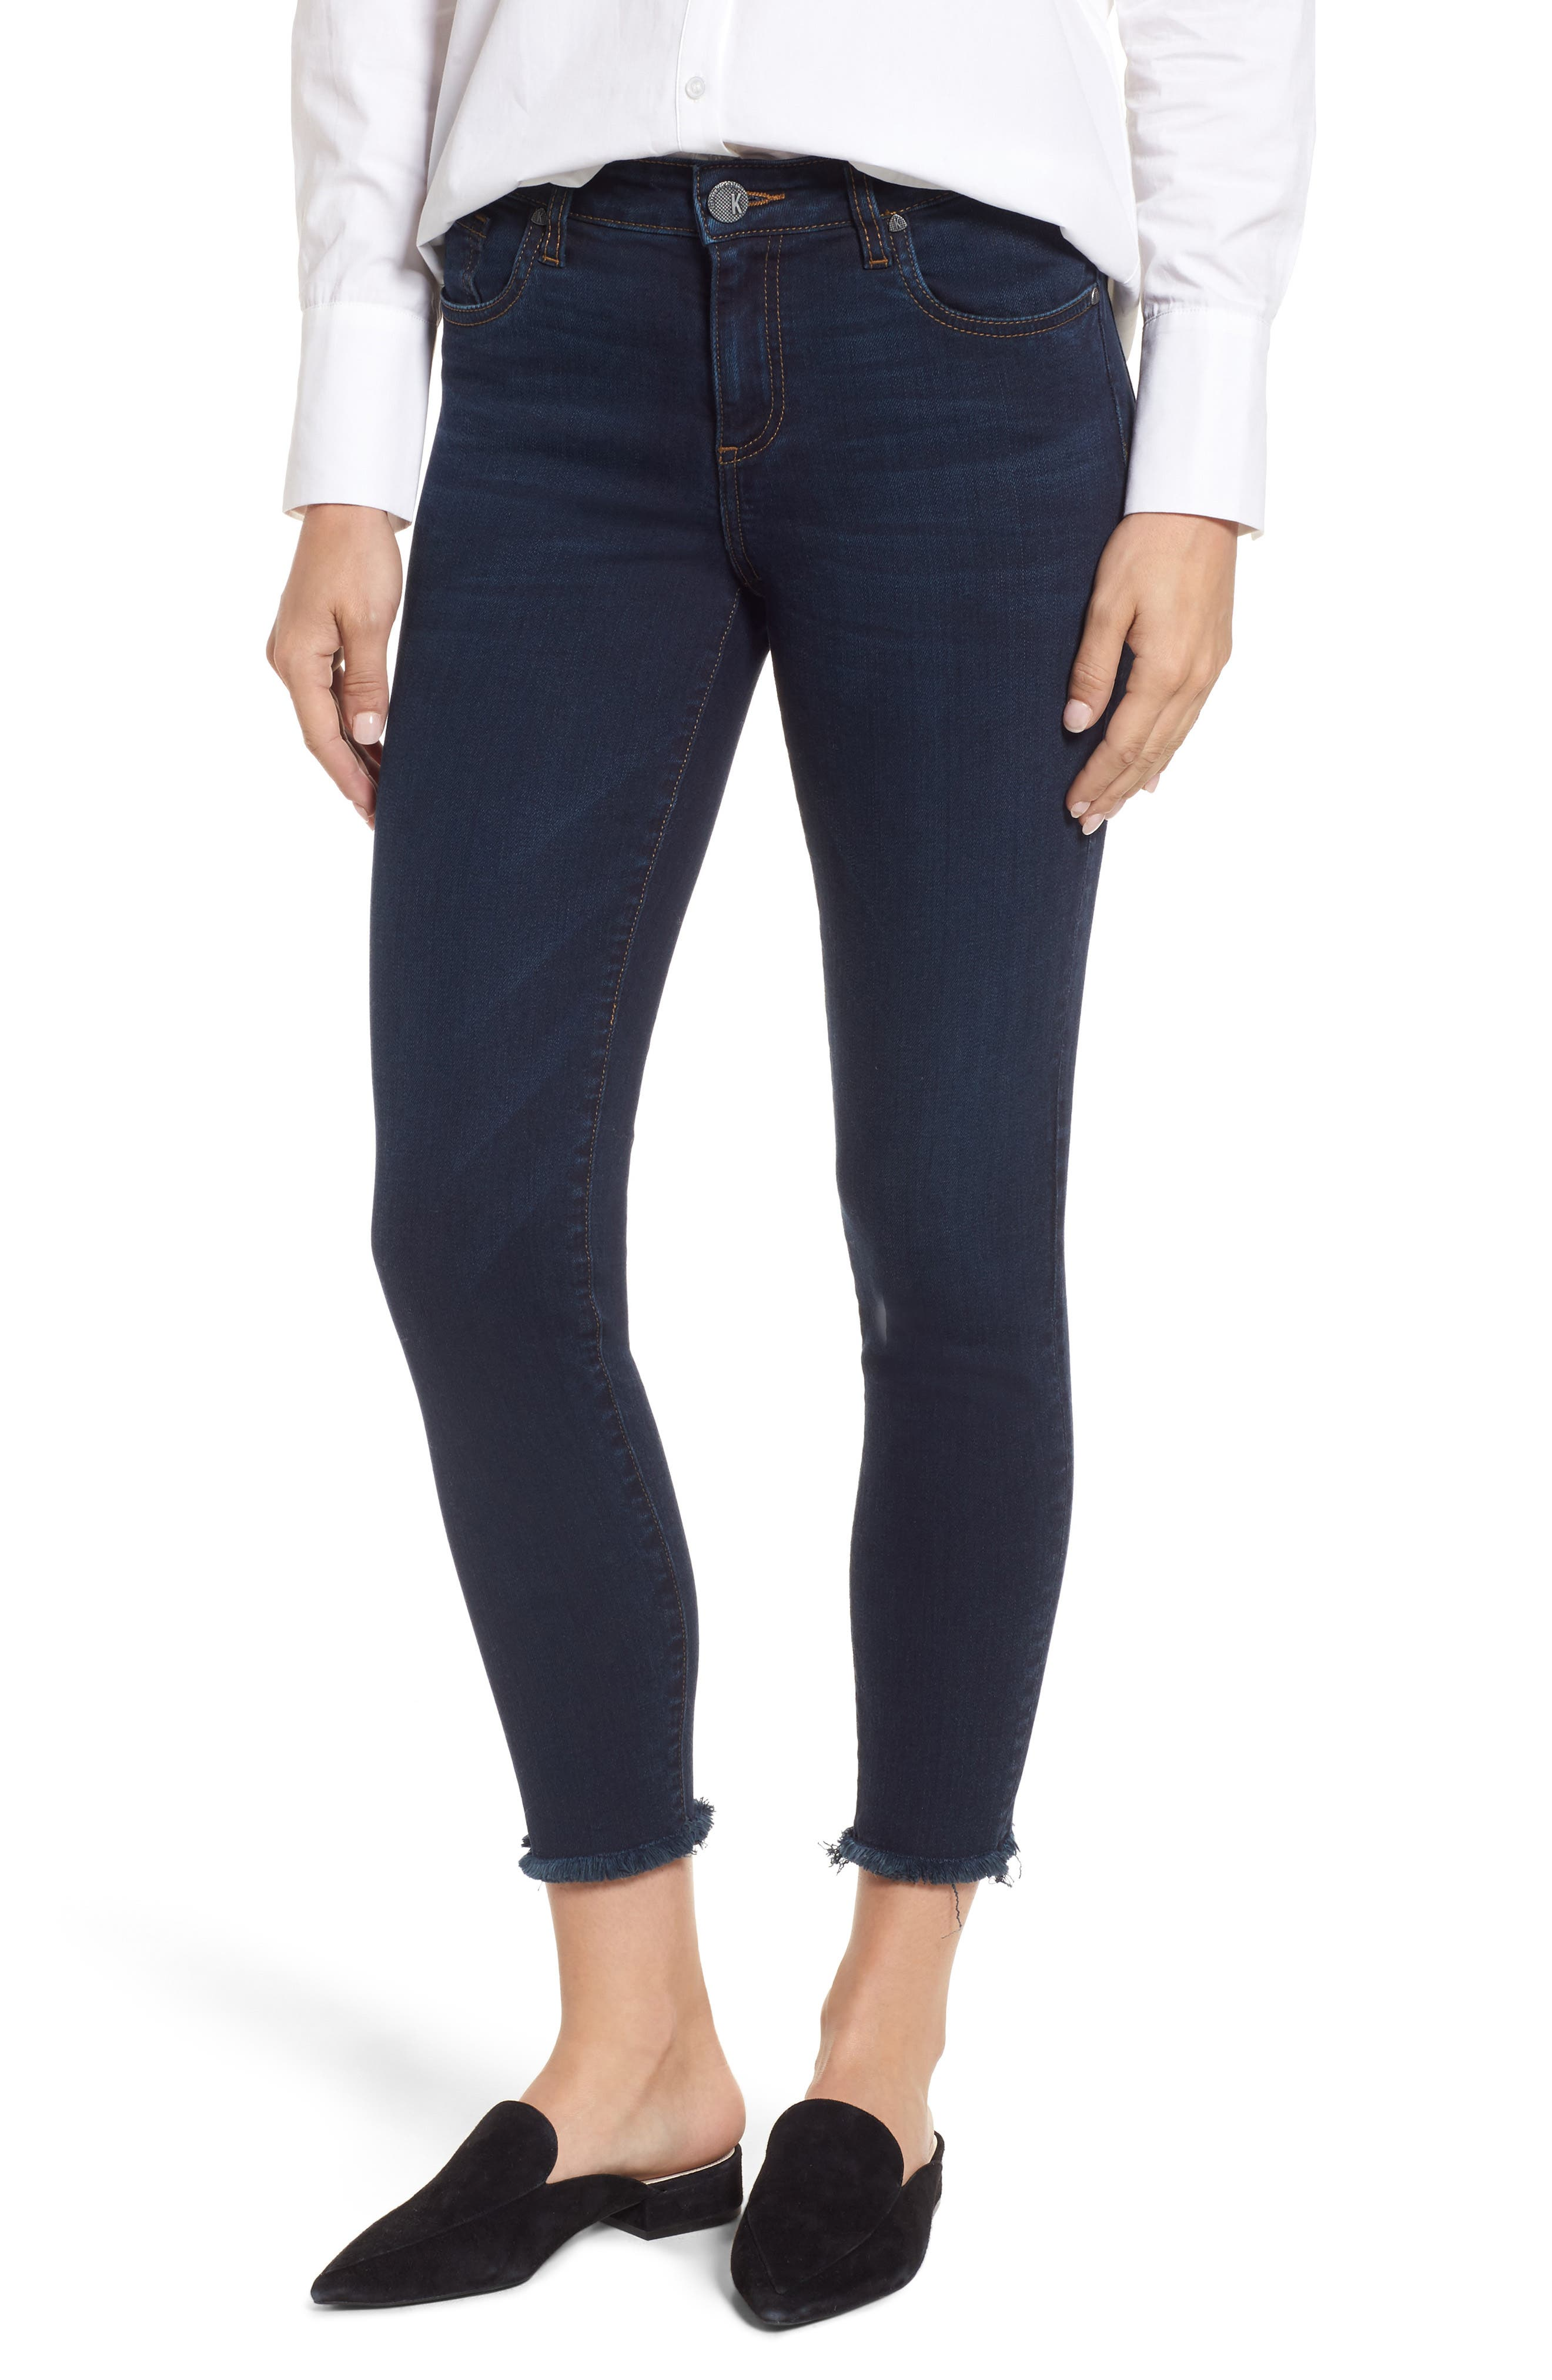 Alternate Image 1 Selected - KUT from the Kloth Donna Frayed Skinny Crop Jeans (Certitude)